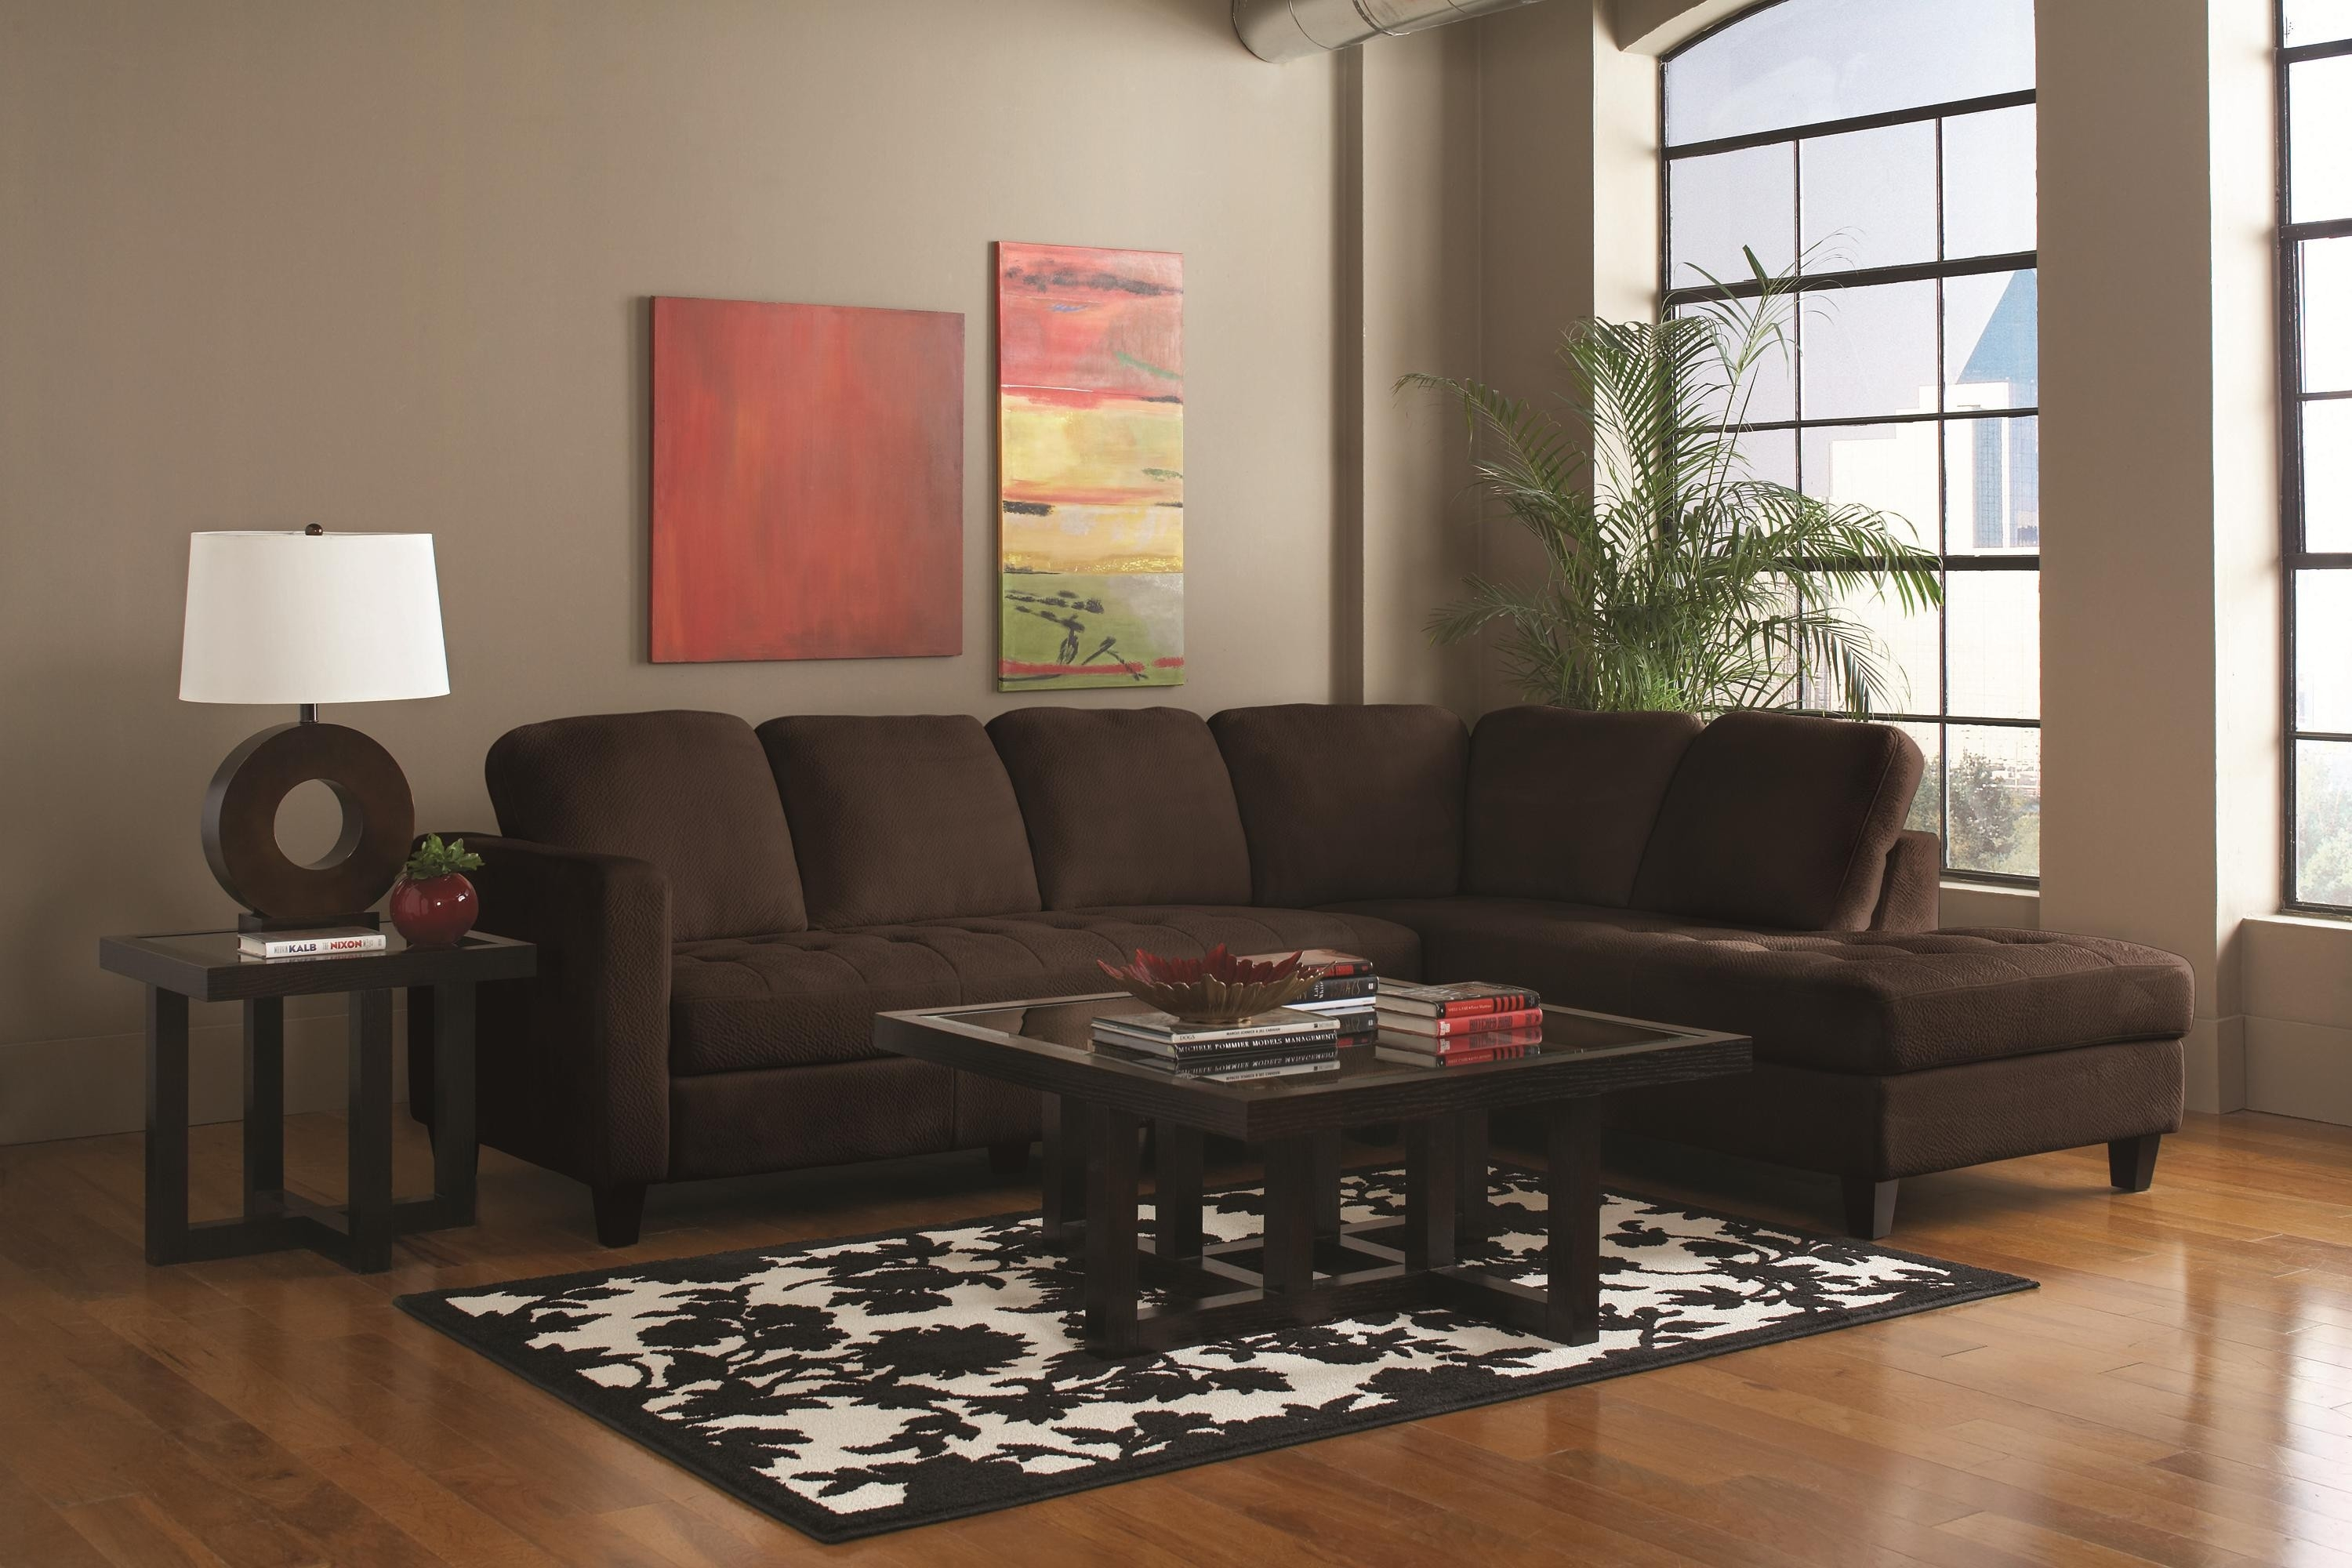 12 best of coffee table for sectional sofa with chaise coffee table for sectional sofa with chaise cleanupflorida in coffee table for sectional sofa with chaise geotapseo Gallery